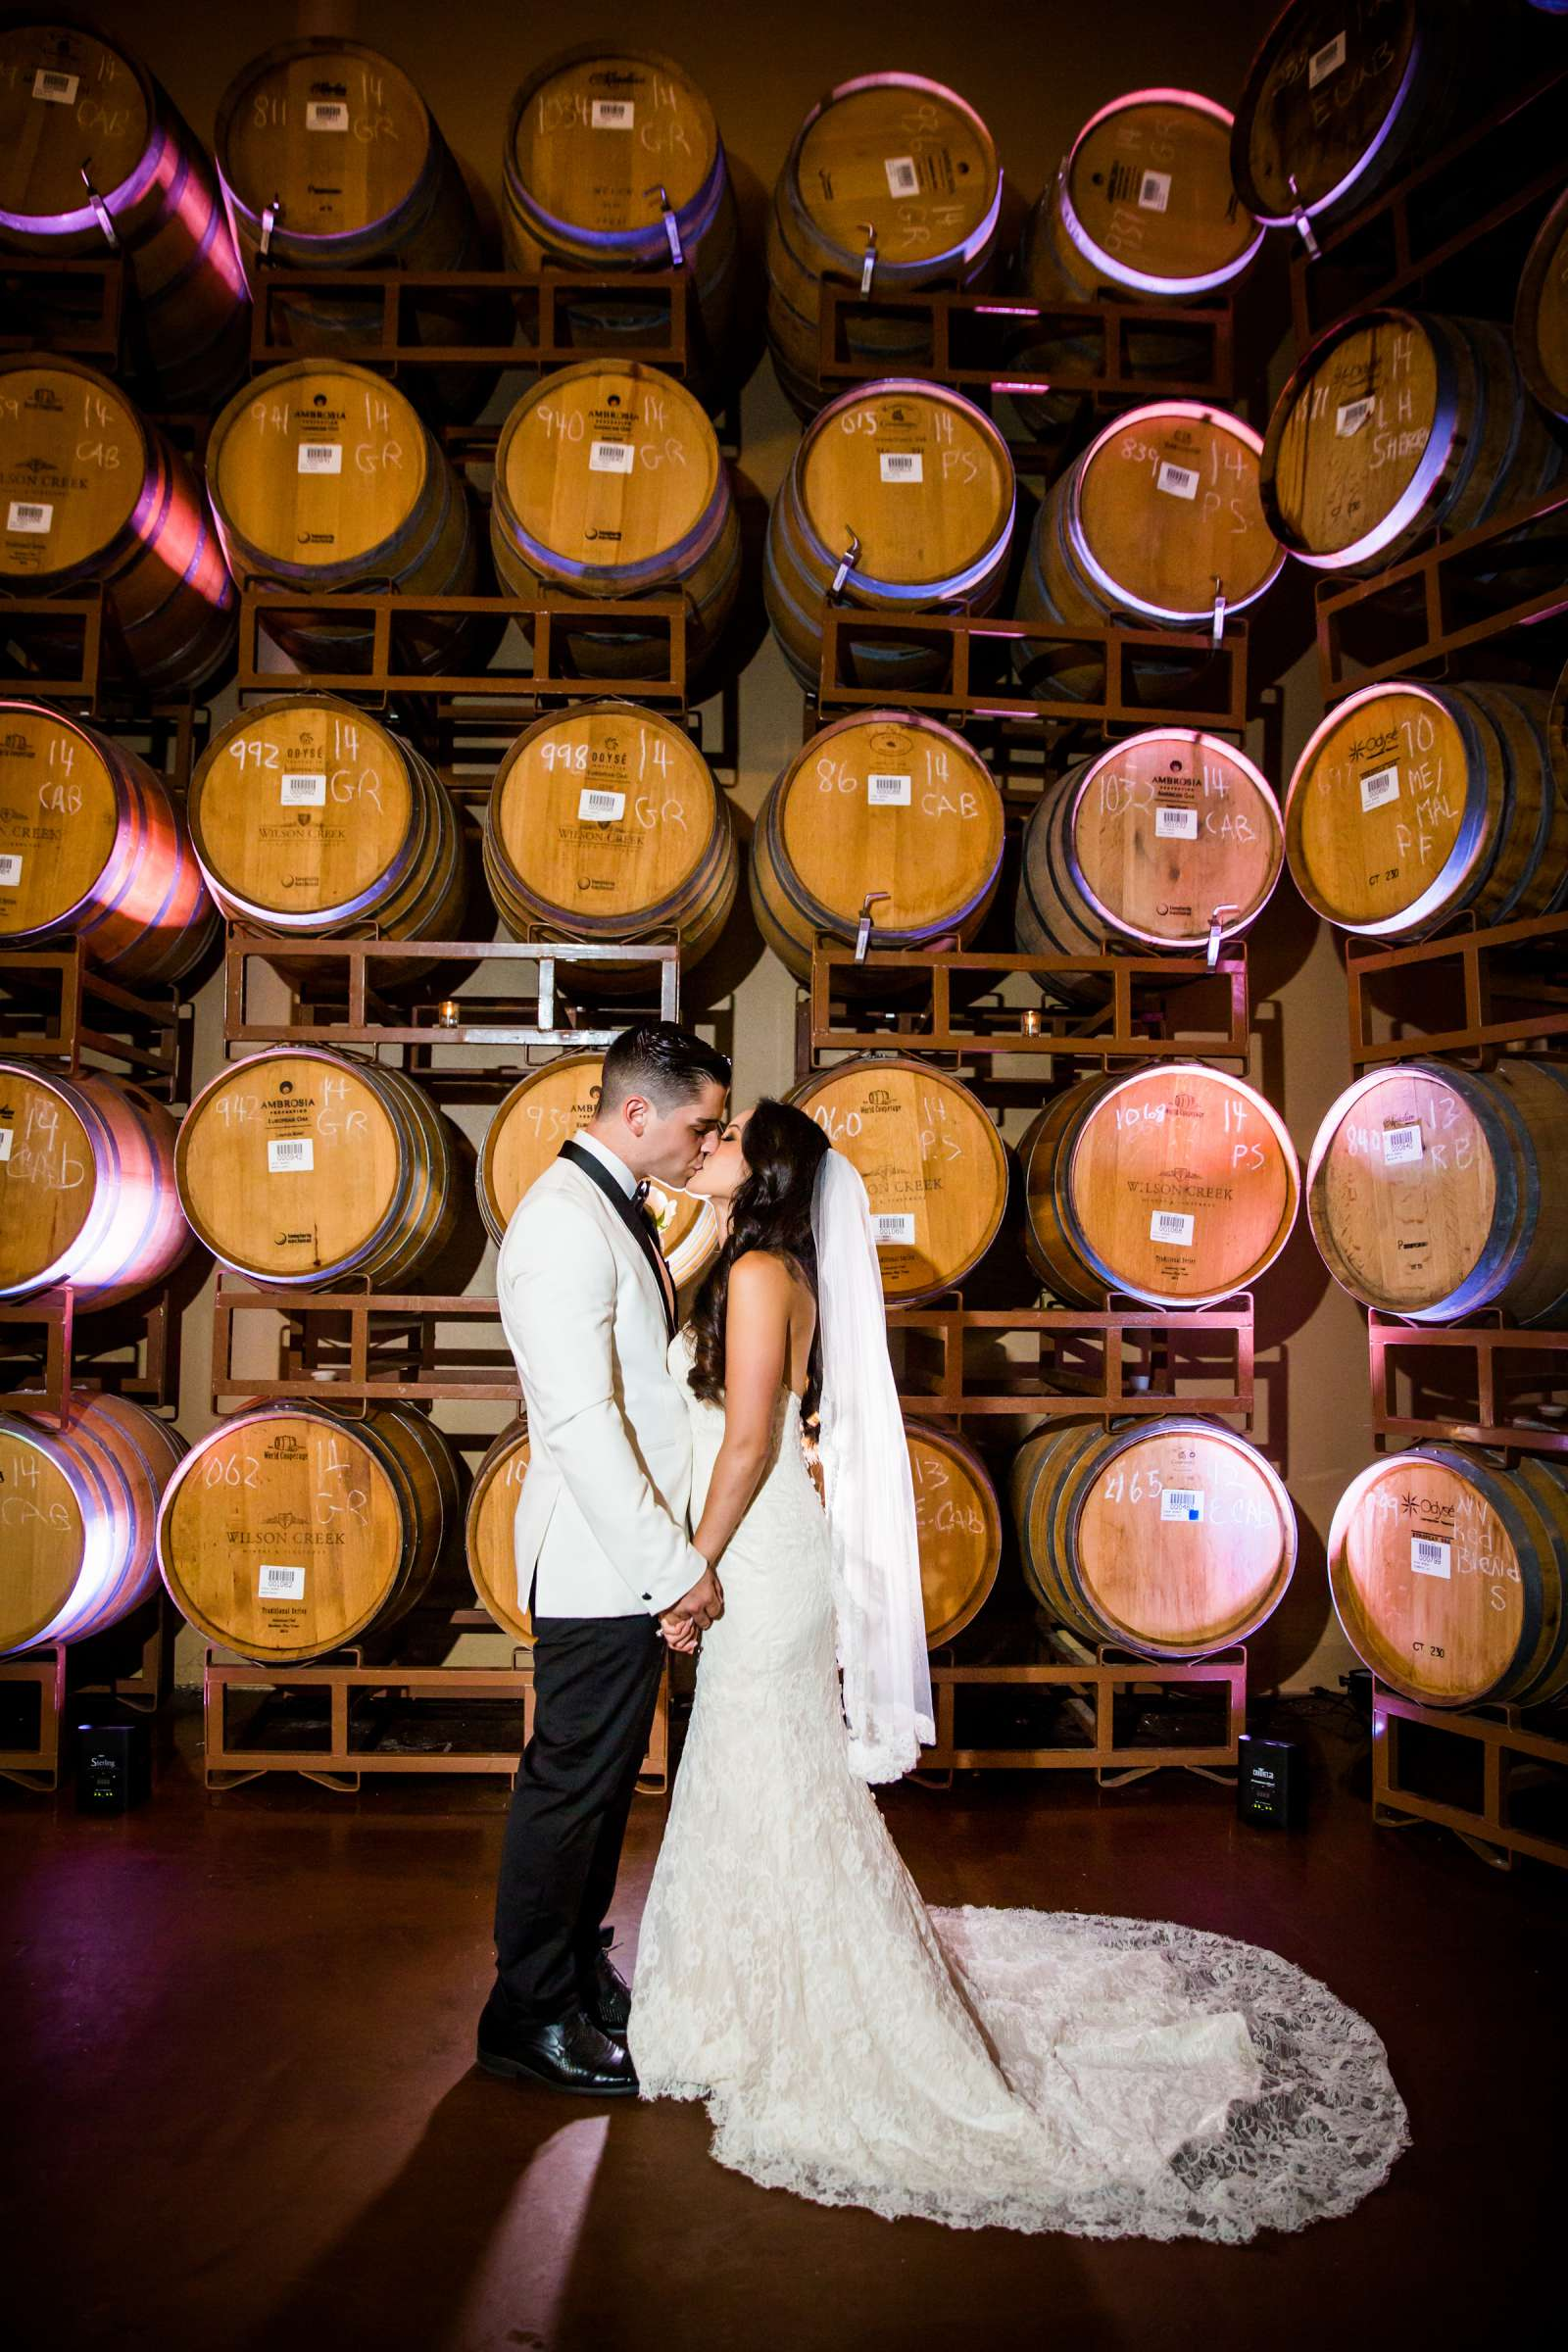 Wilson Creek Winery Wedding, Quynhnhi and Jacob Wedding Photo #1 by True Photography